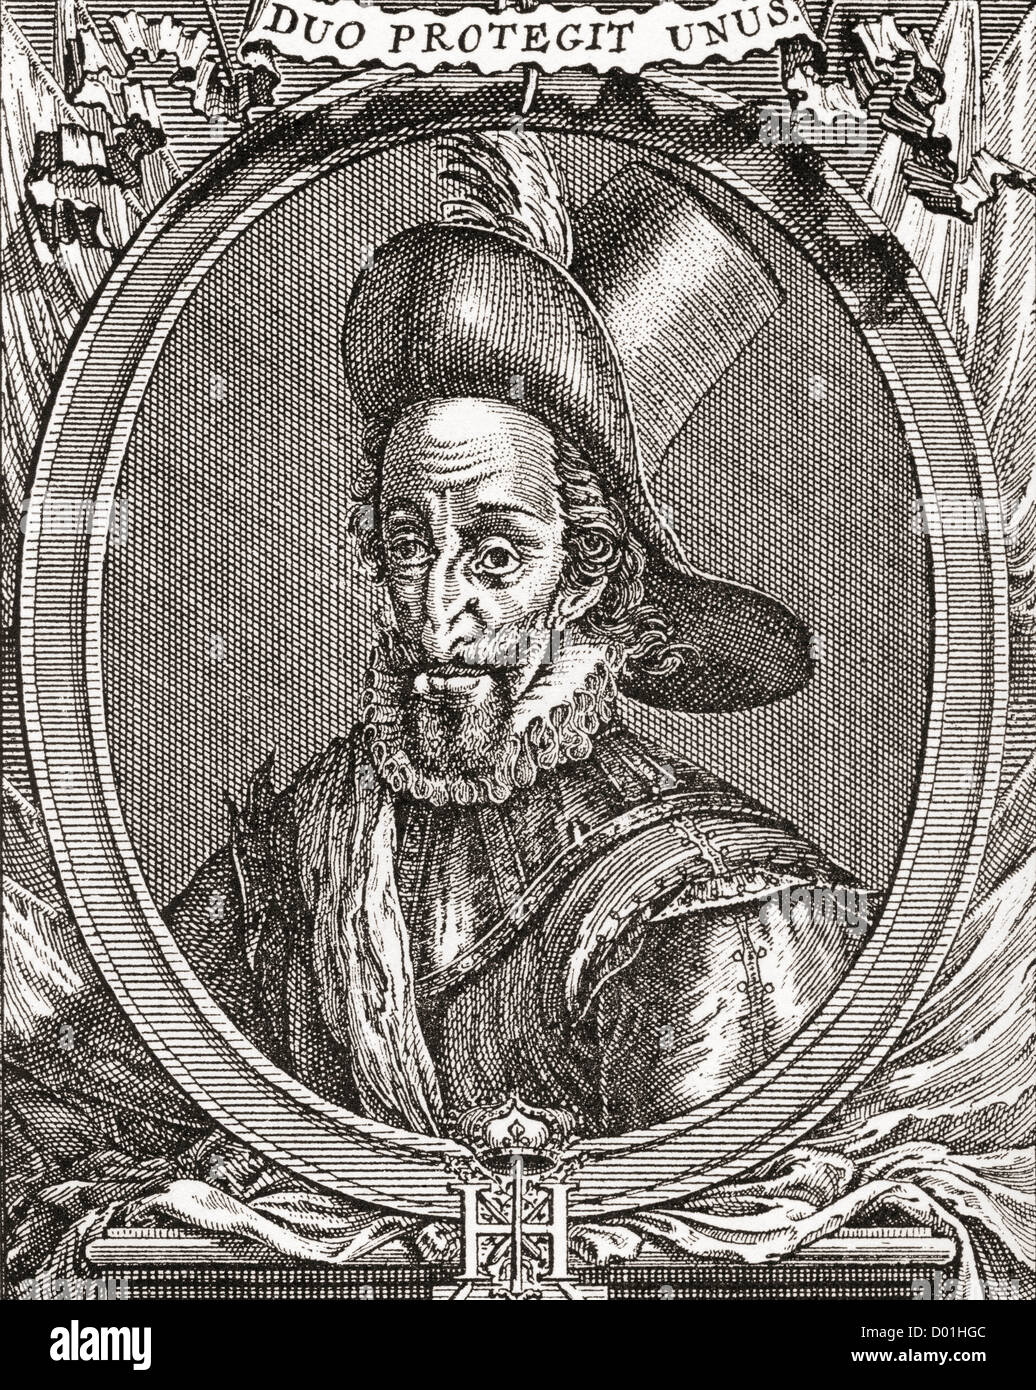 Henry IV, 1553 –1610. King of Navarre (as Henry III) from 1572 to 1610 and King of France from 1589 to 1610. Stock Photo